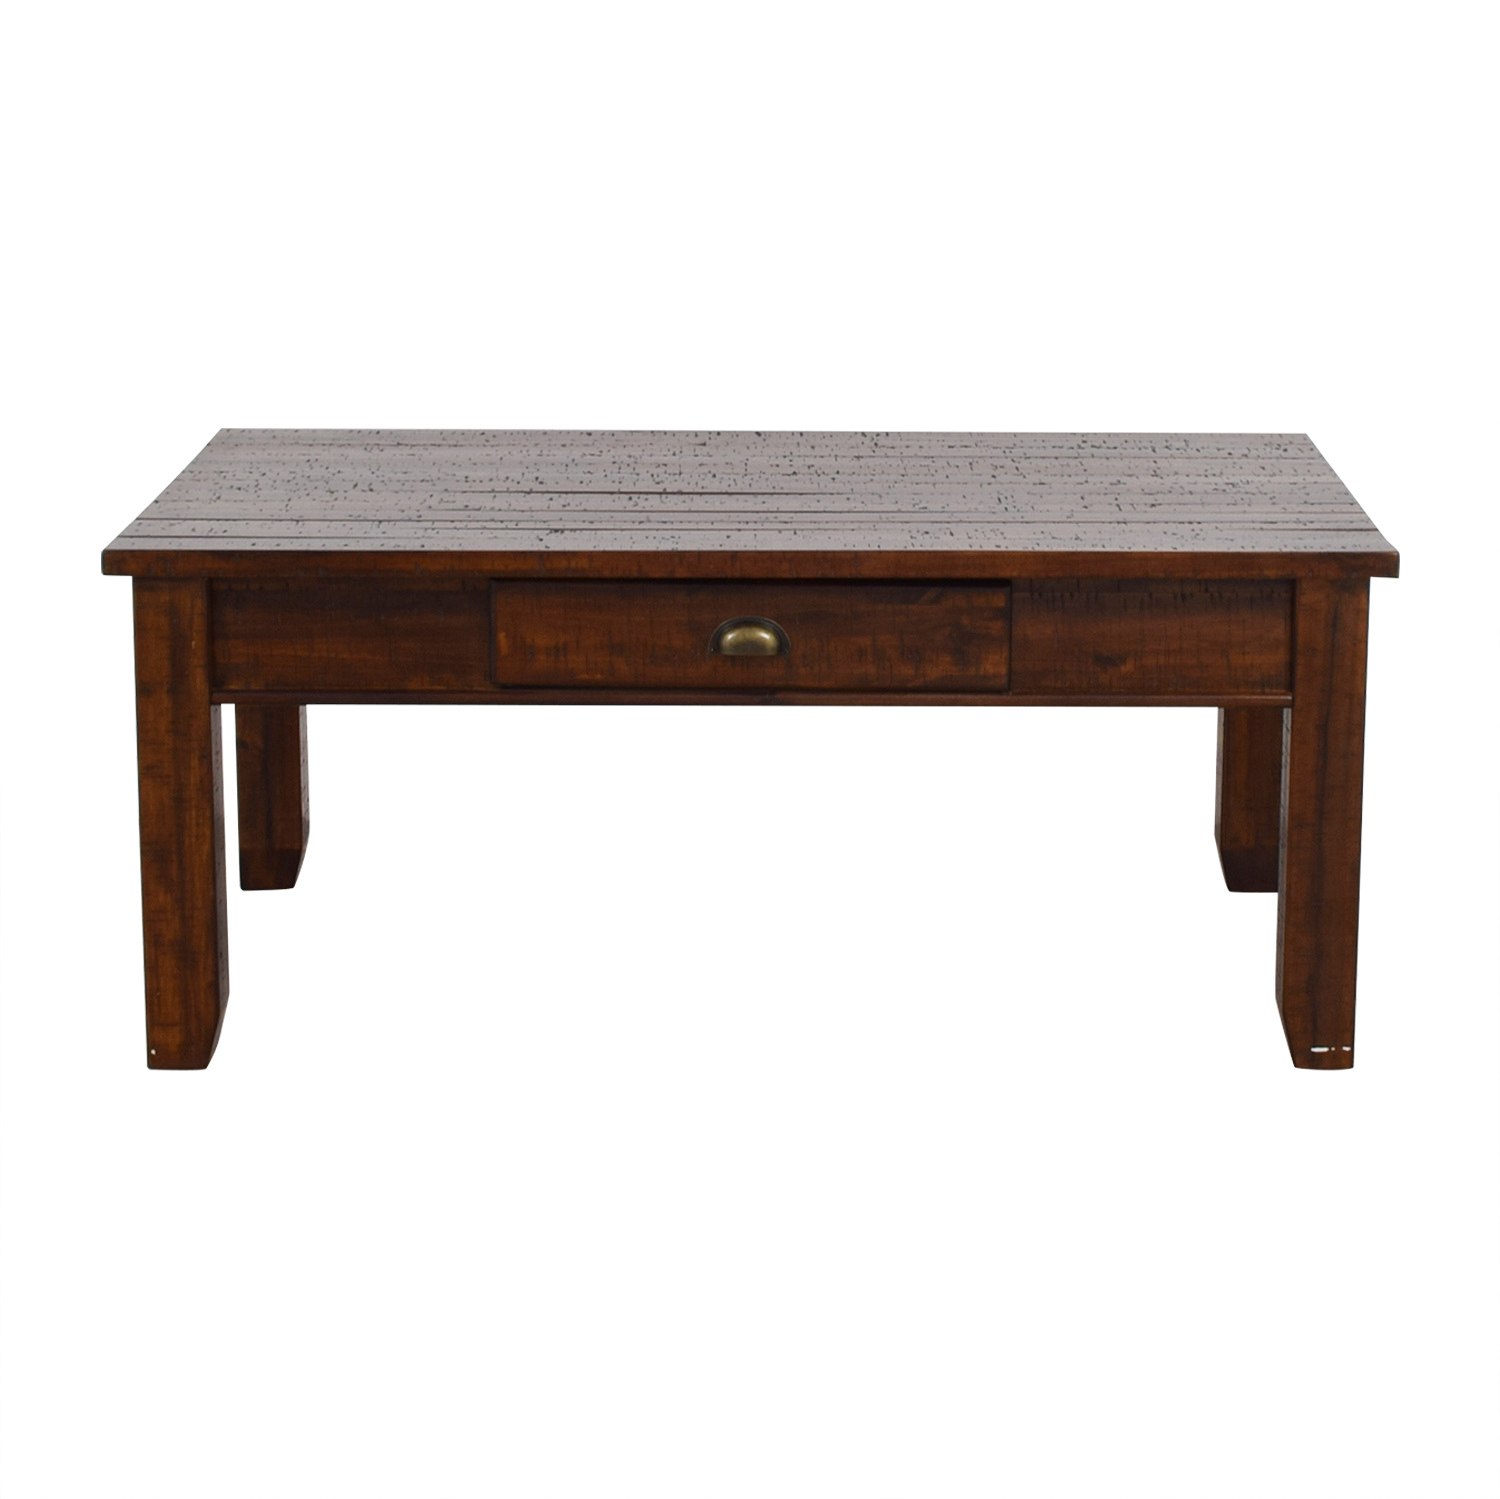 buy Raymour & Flanigan Raymour & Flanigan Urban Lodge Coffee Table online